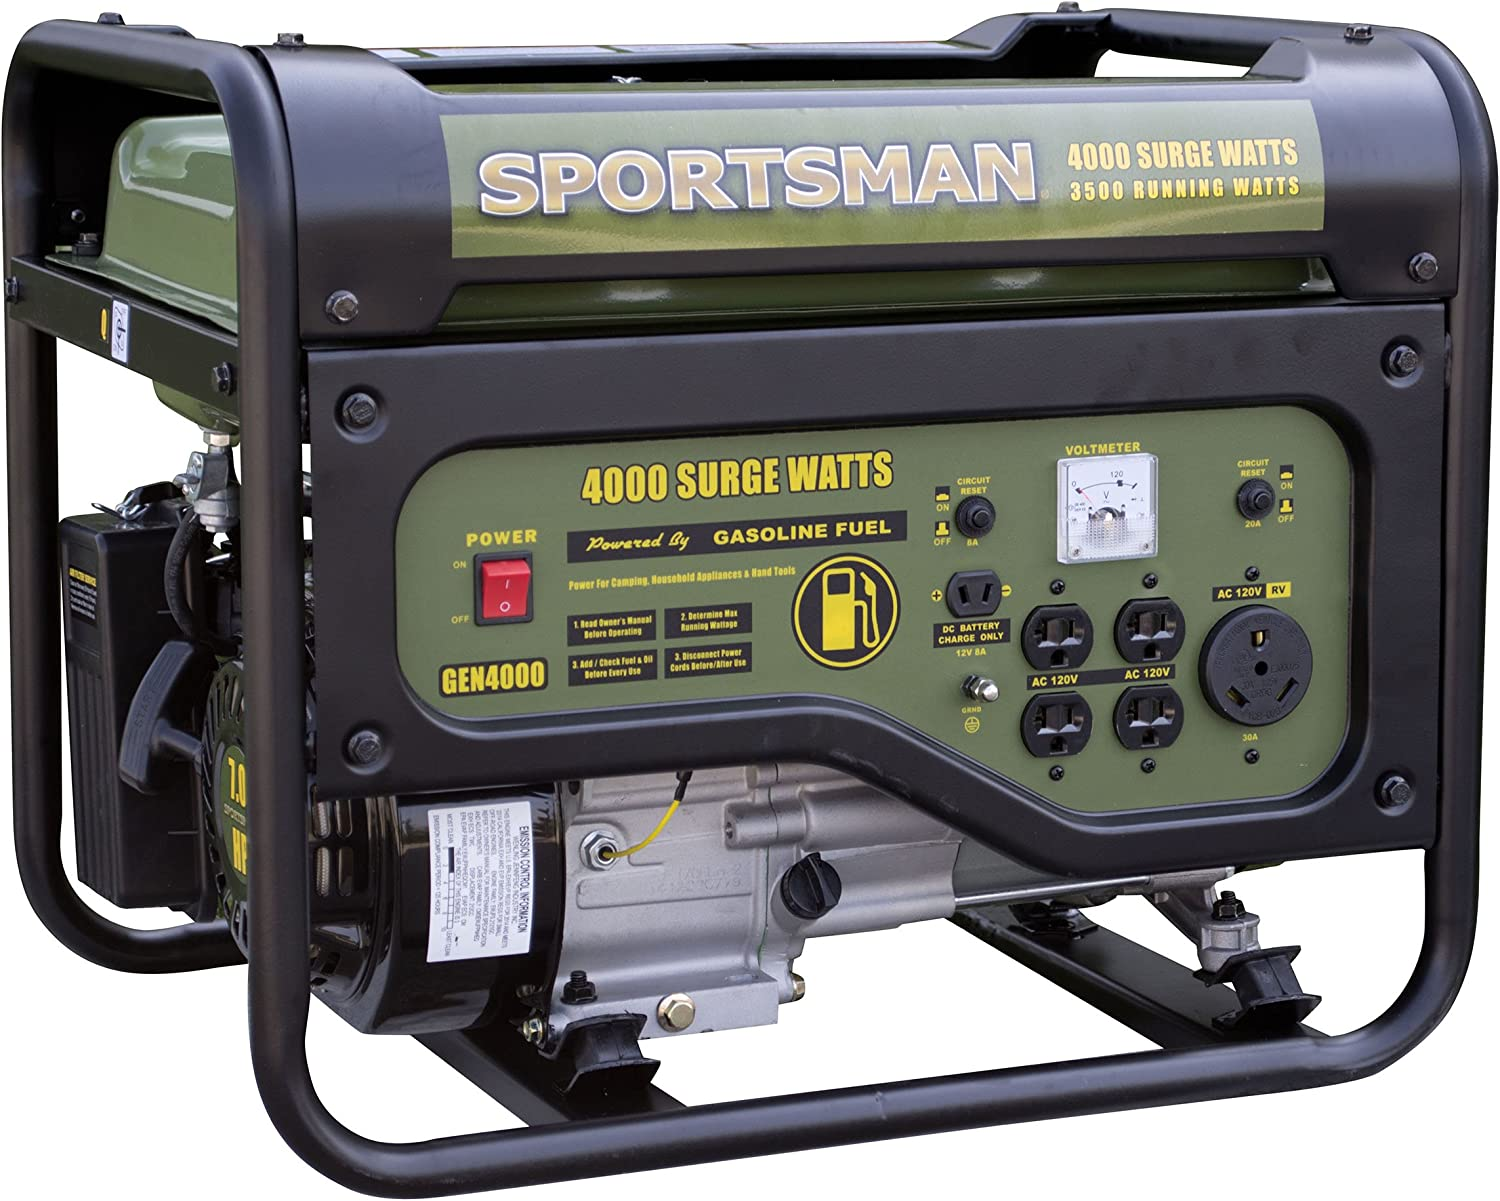 Best Home Generators For Power Outages 2020 (Top 10) 9